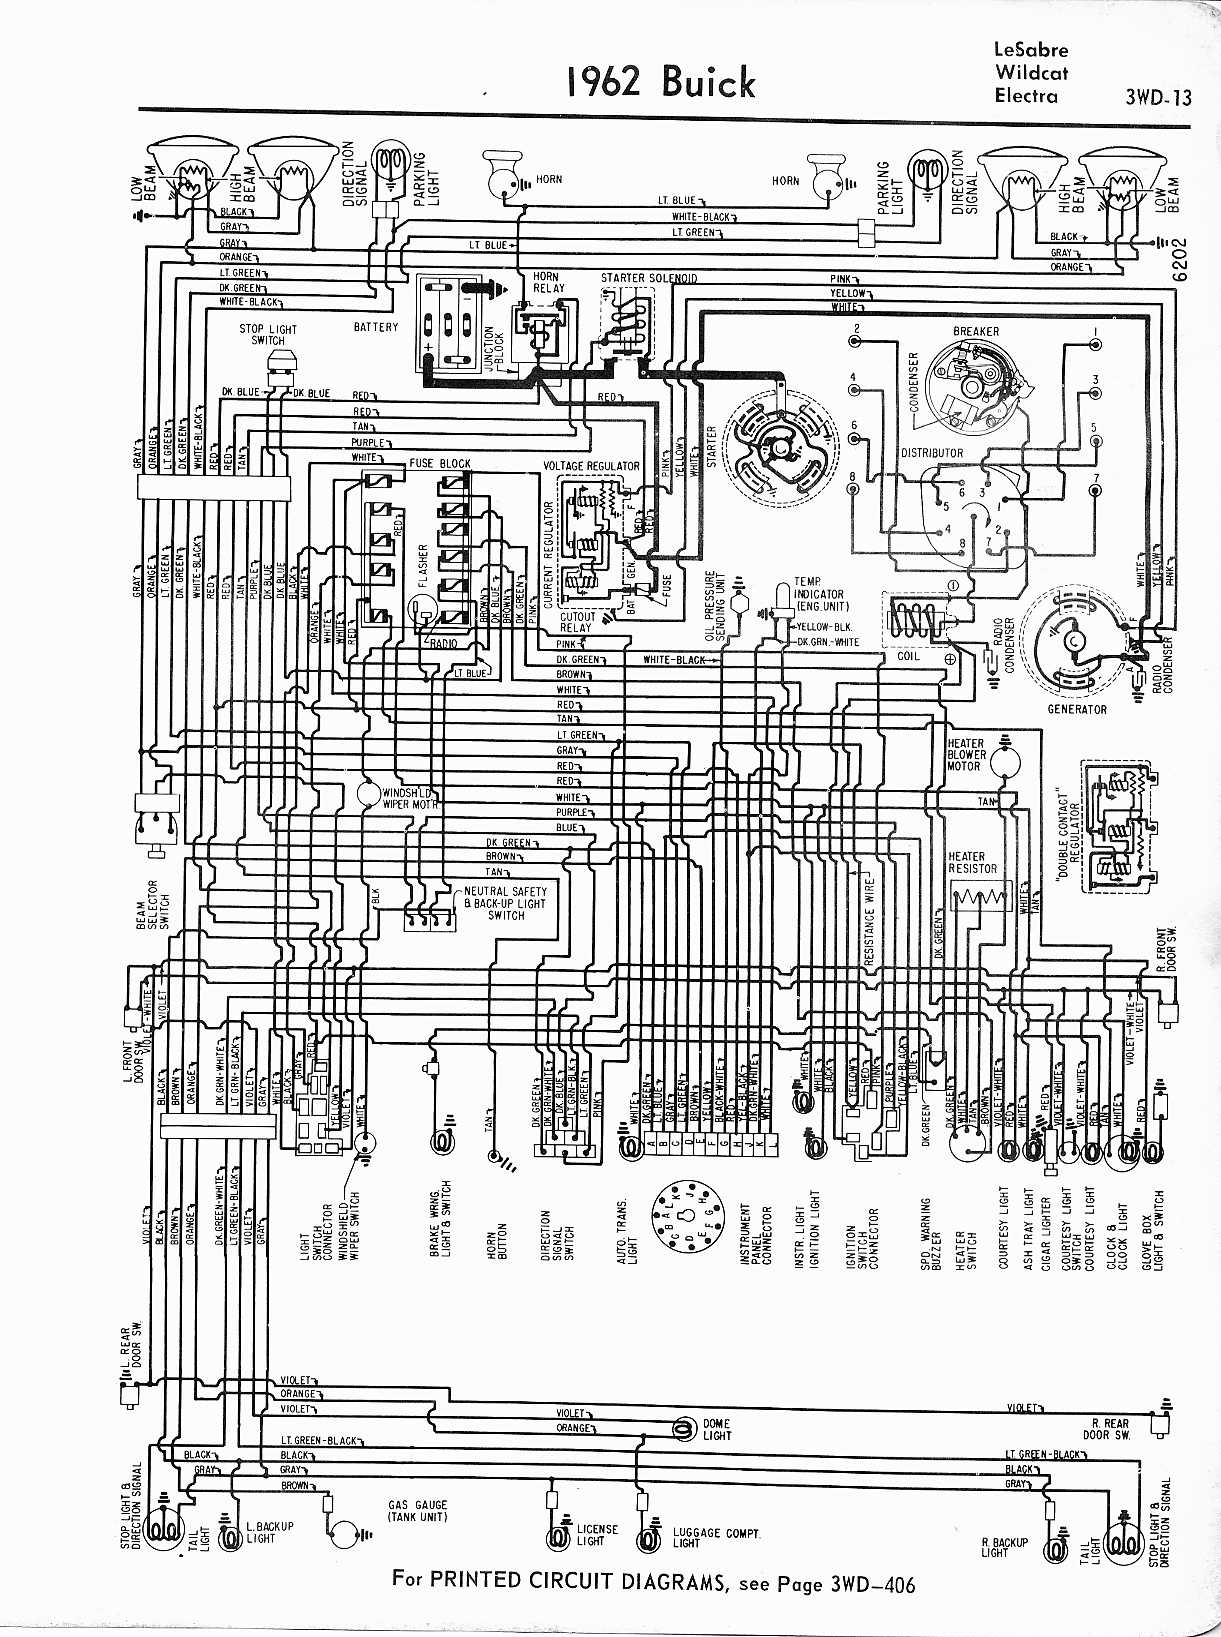 87 Buick Gn Wiring Diagram Schematic Library 1957 Chevy Wire 1966 Riviera Simple Grand National Charging System Diagrams